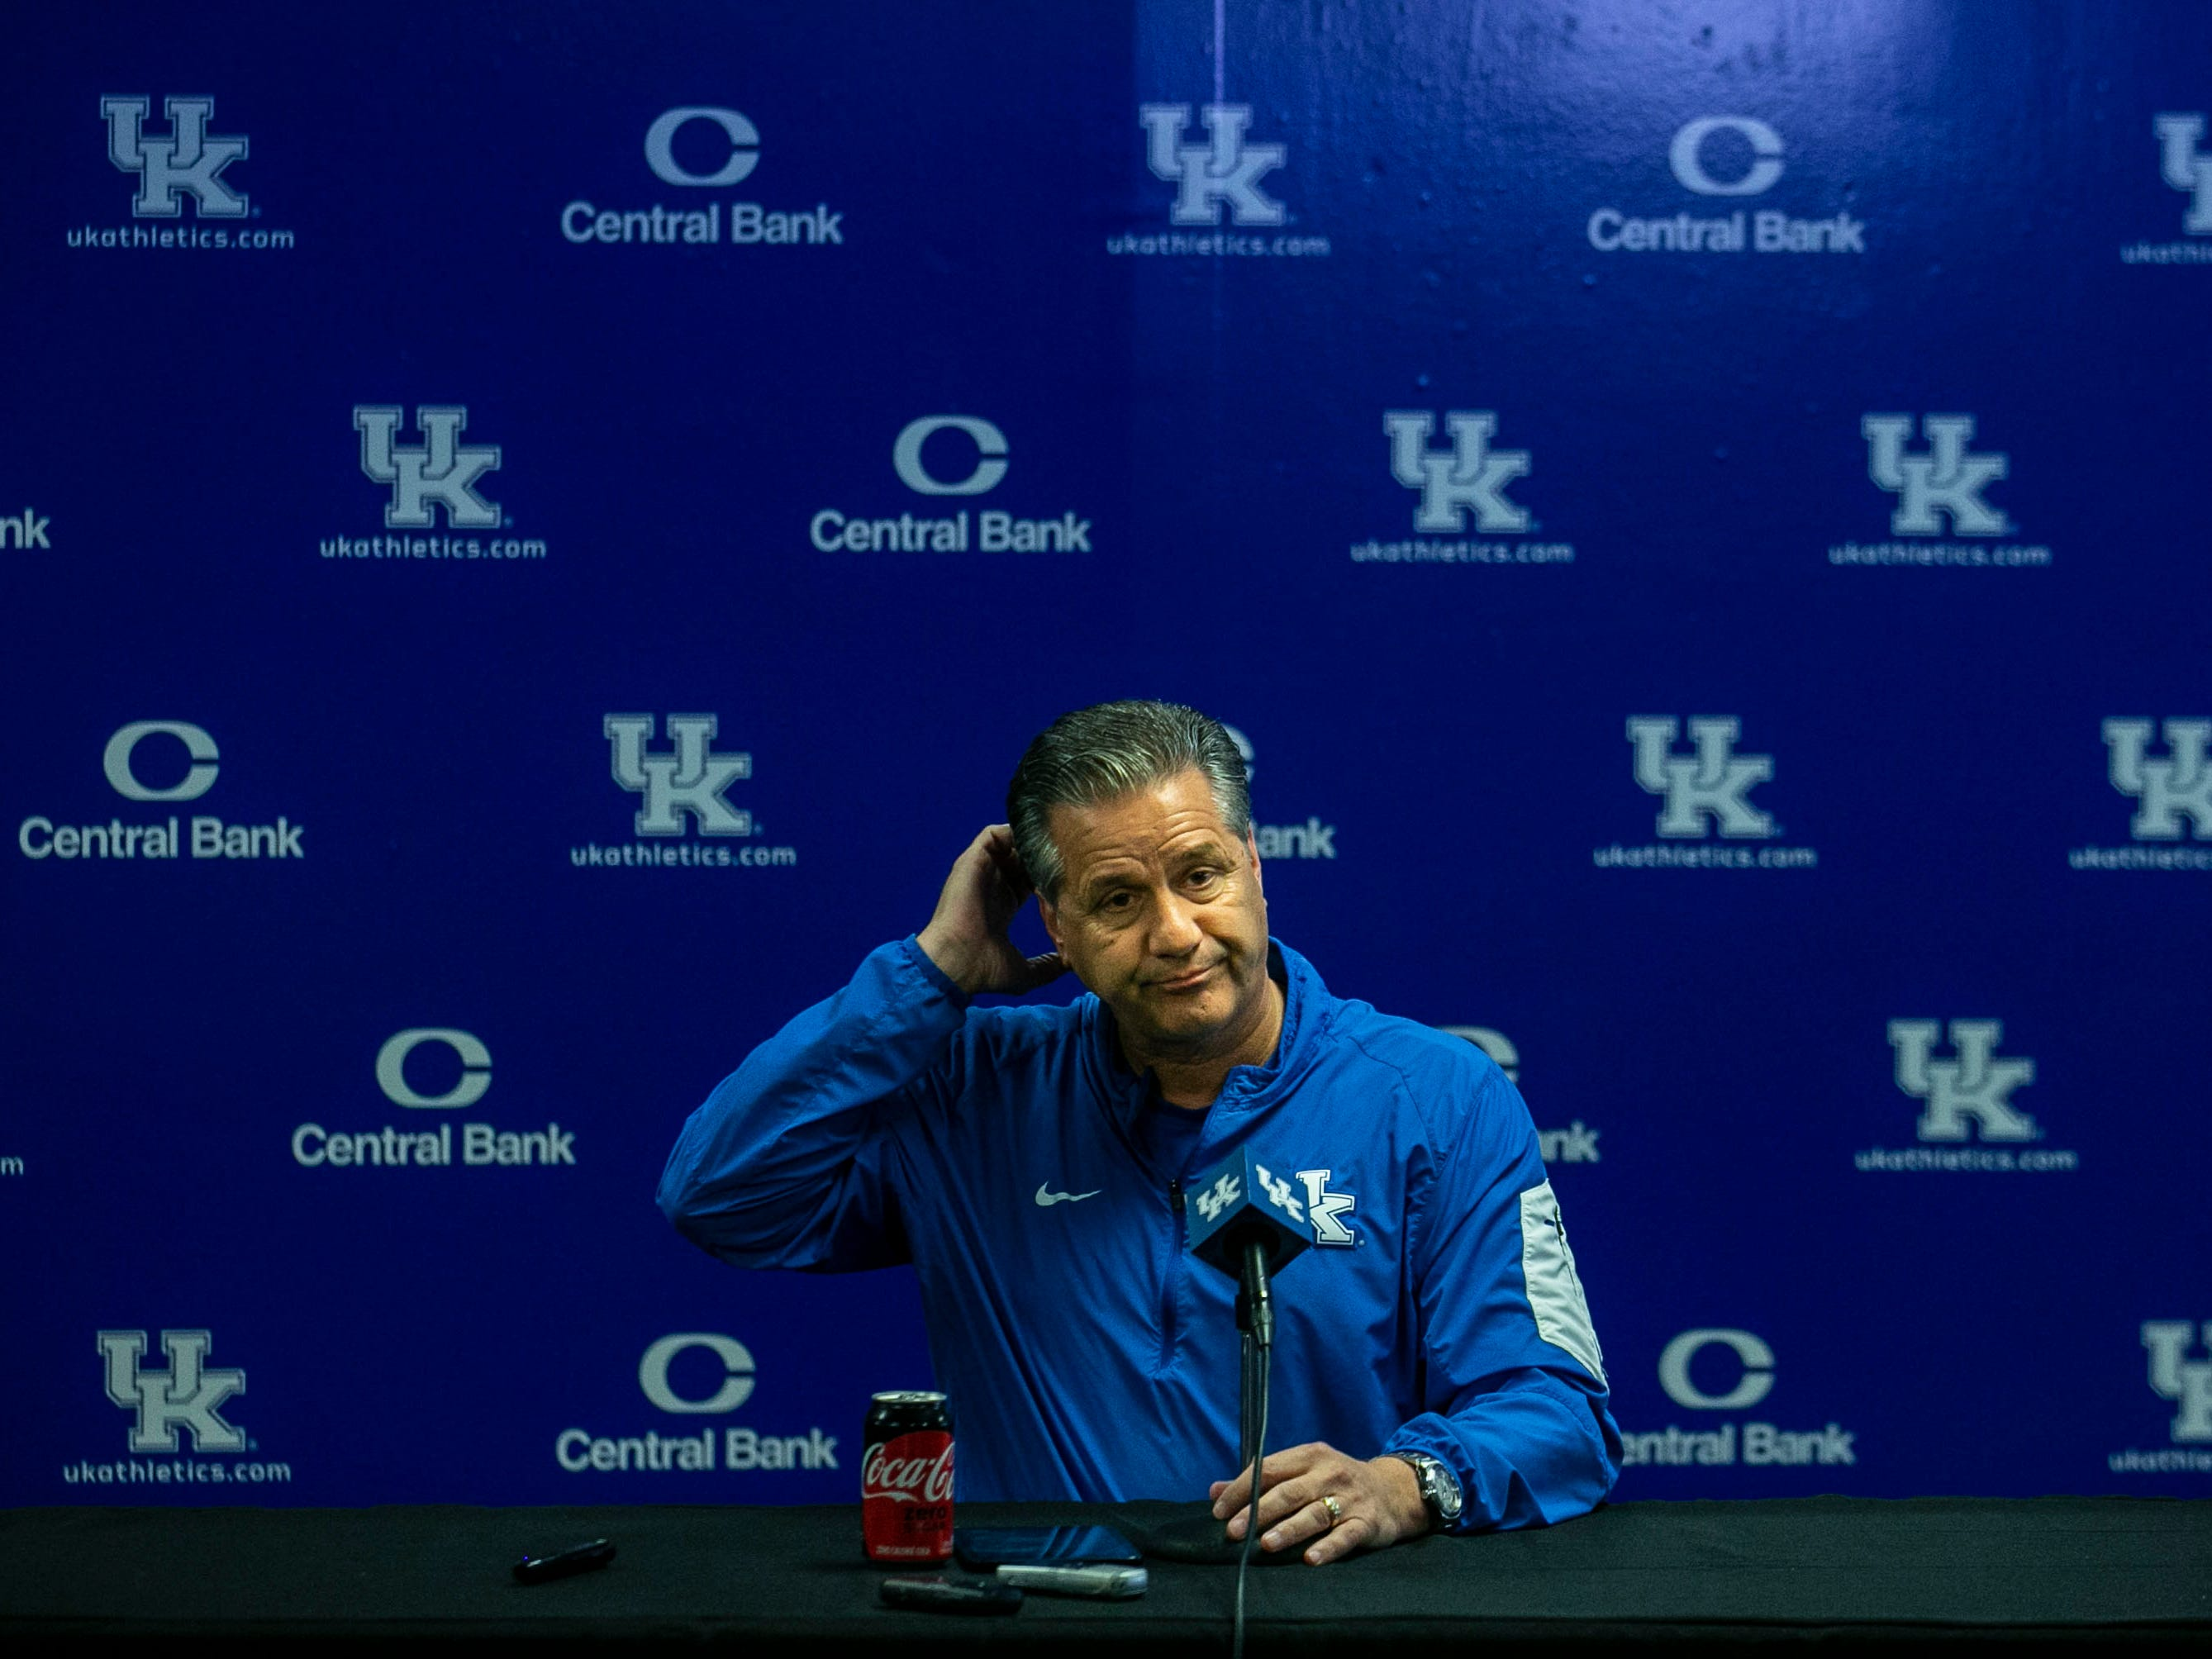 """Probably wouldn't have him come talk to the team based on it would put North Korea on the backburner,"" John Calipari said with a laugh, referring to the media attention that having Rick Pitino at UK would elicit. ""Let me just say that"" while talking during Media Day Thursday afternoon at the Joe Kraft Center."